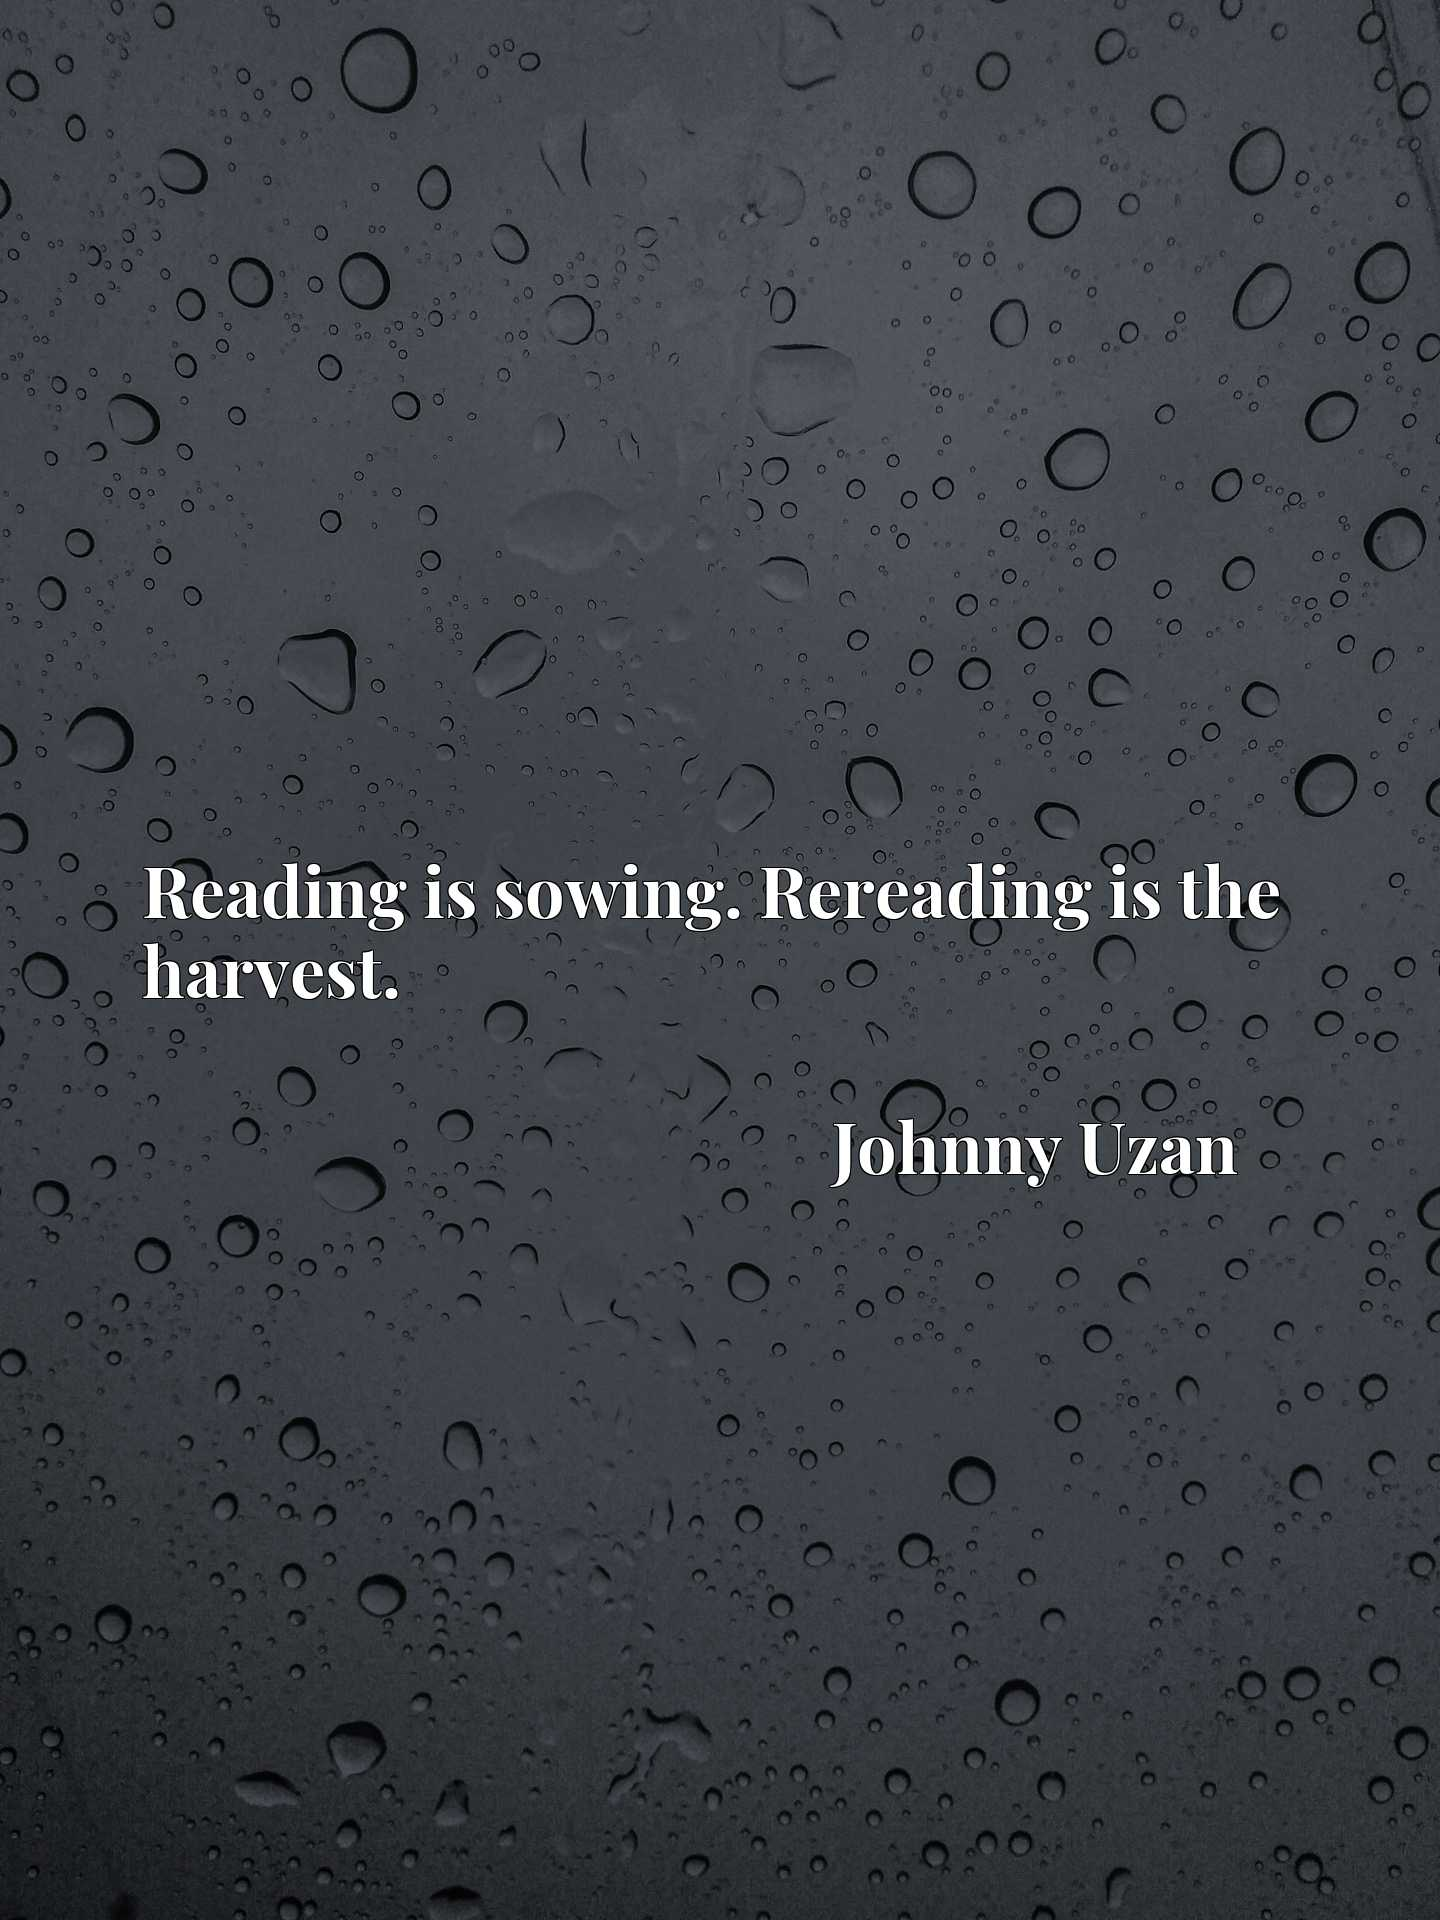 Reading is sowing. Rereading is the harvest.